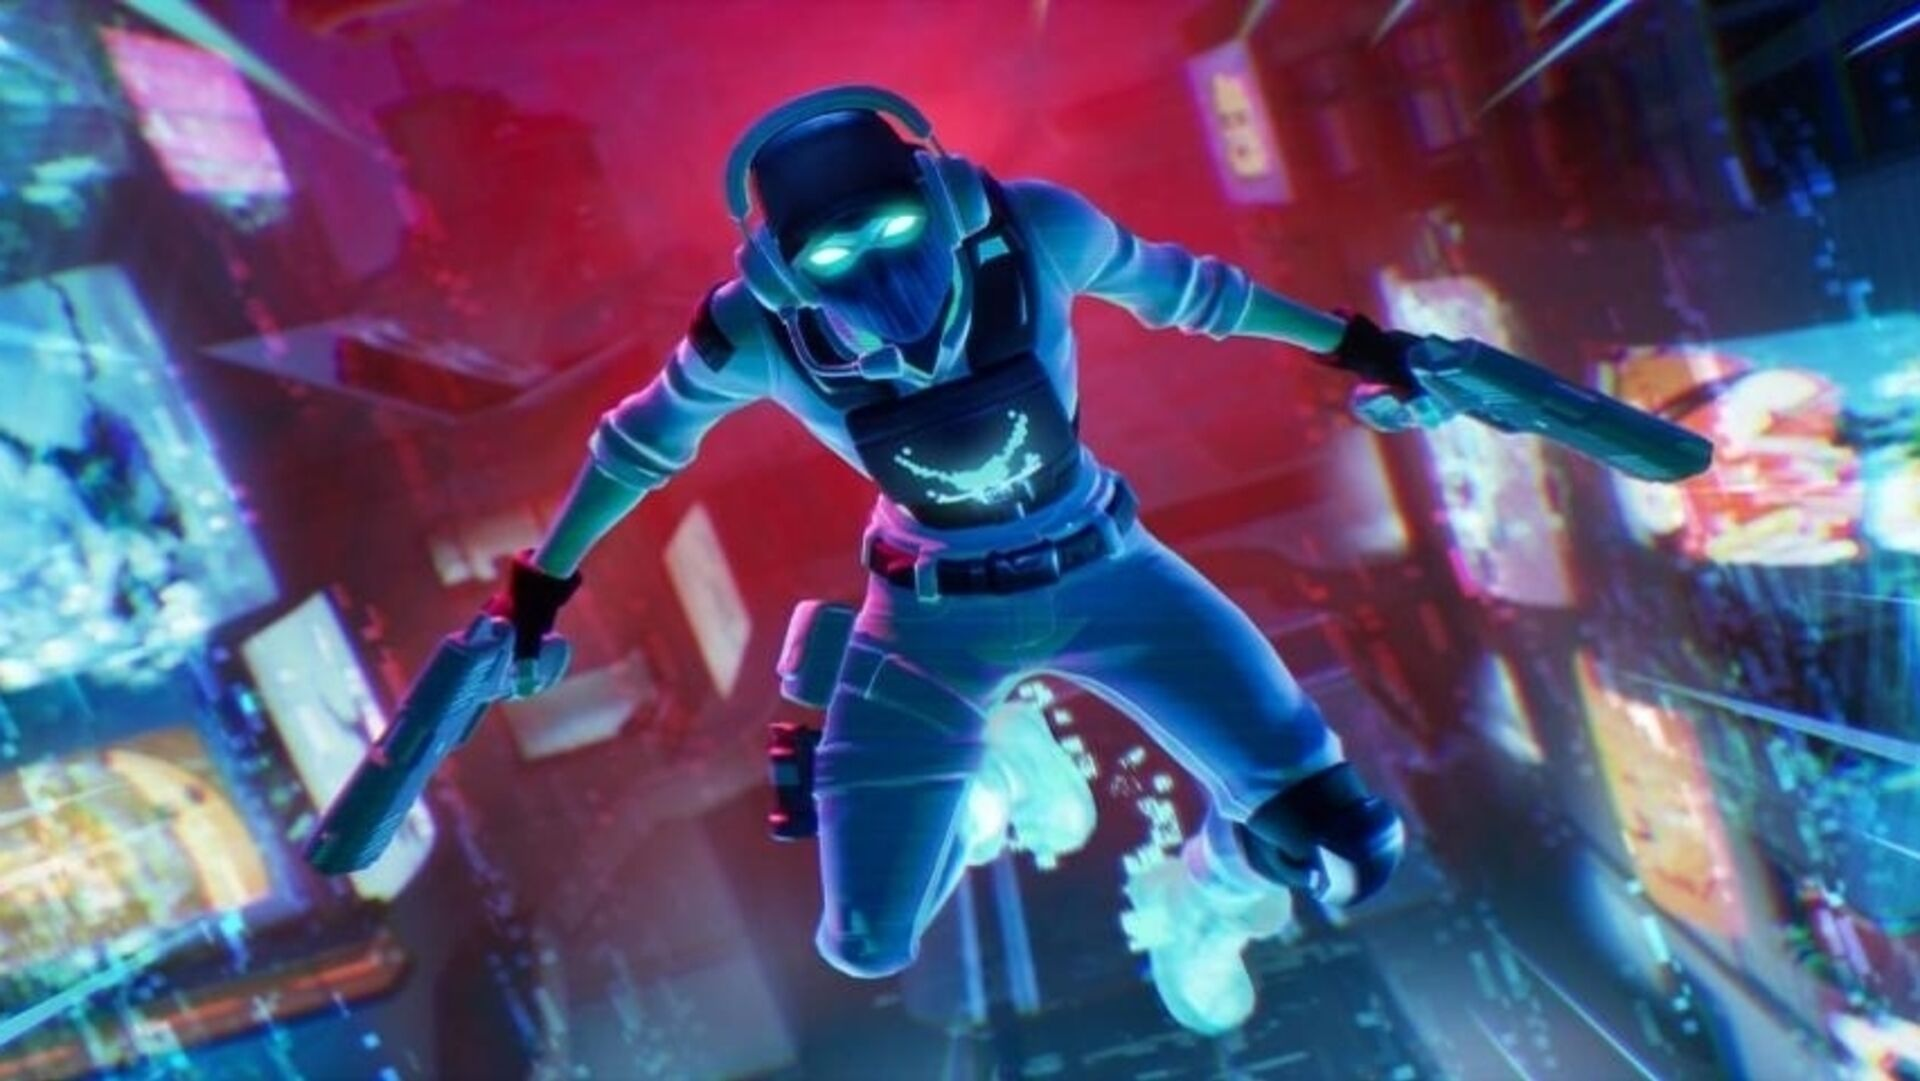 Fortnite Hacker Net epic games hit with class-action lawsuit over hacked